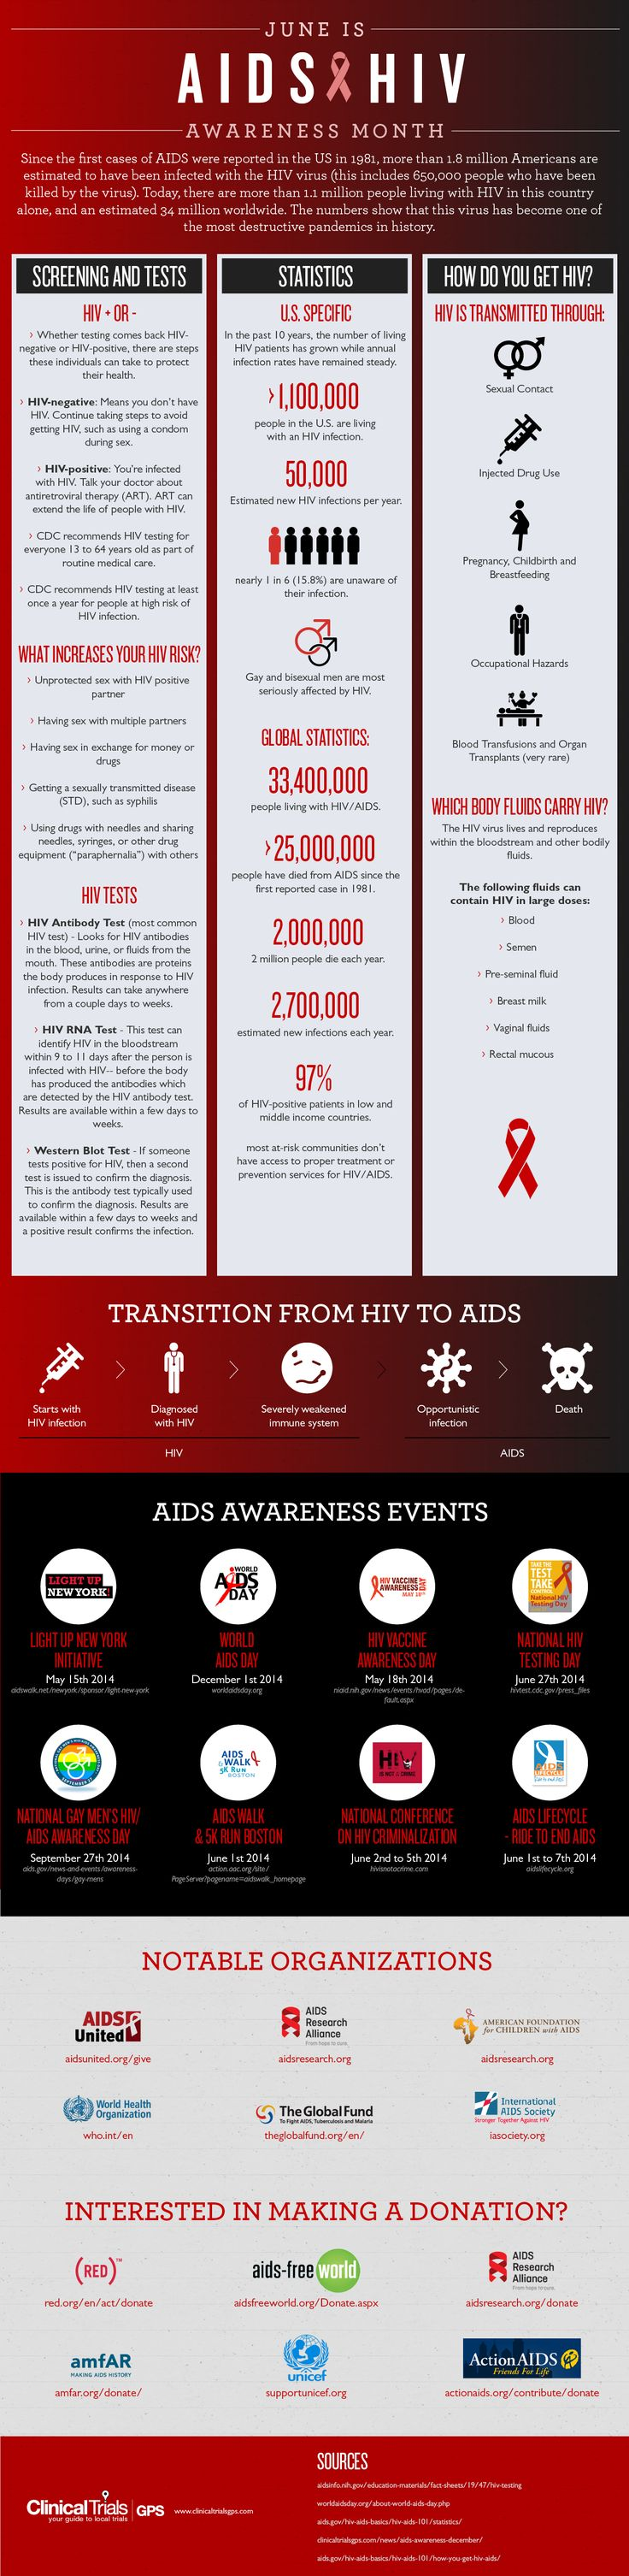 Did you know that June is National HIV/AIDS Awareness Month? This infographic contains some valuable information, including statistics and details about annual awareness events. #aids #hiv